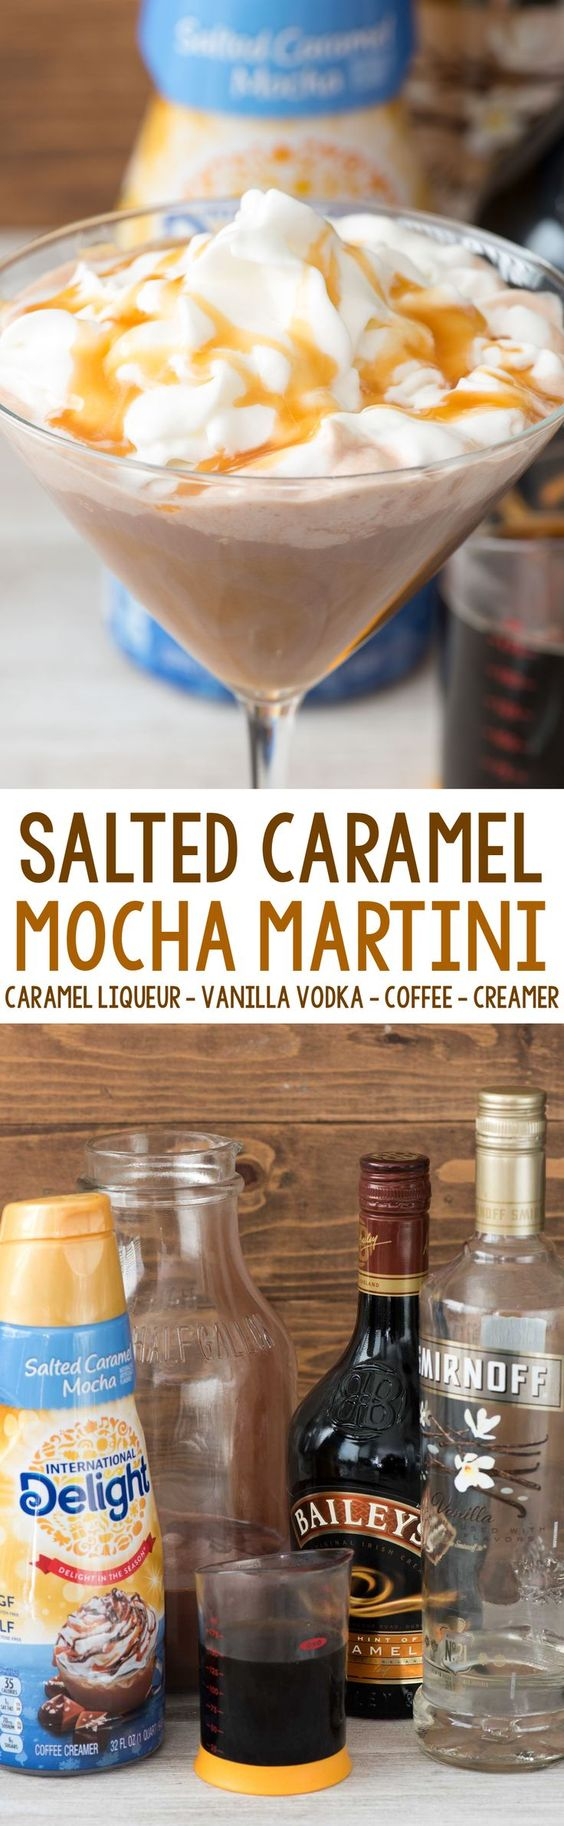 Salted Caramel Mocha Martini - an easy cocktail recipe made in minutes ...